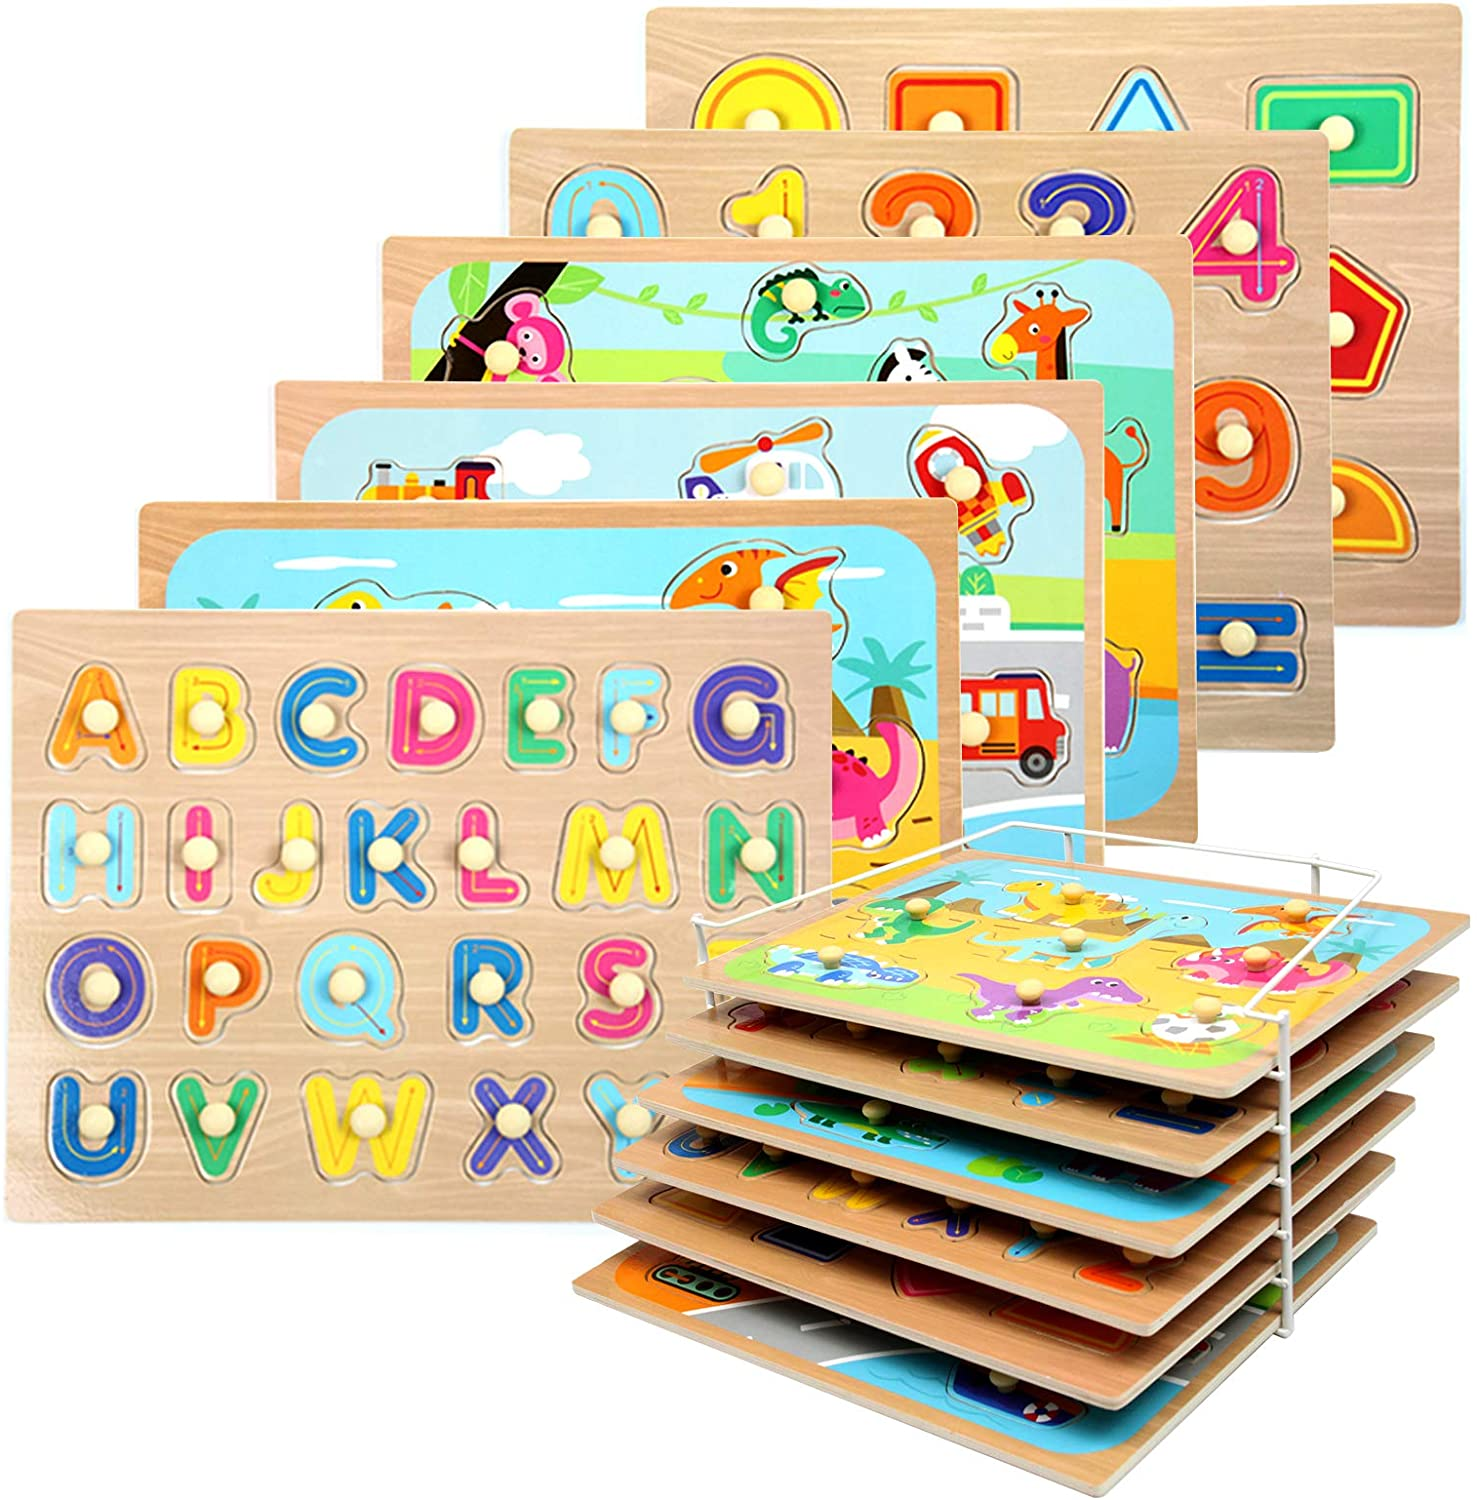 WOOD CITY Toddler Puzzles and Rack Set, Wooden Peg Puzzles Bundle with Storage Holder Rack, Educational Knob Puzzle for Kids Age 2 3 4 Years - Alphabet Number Shape Dinosaur Animal Vehicle: Toys & Games